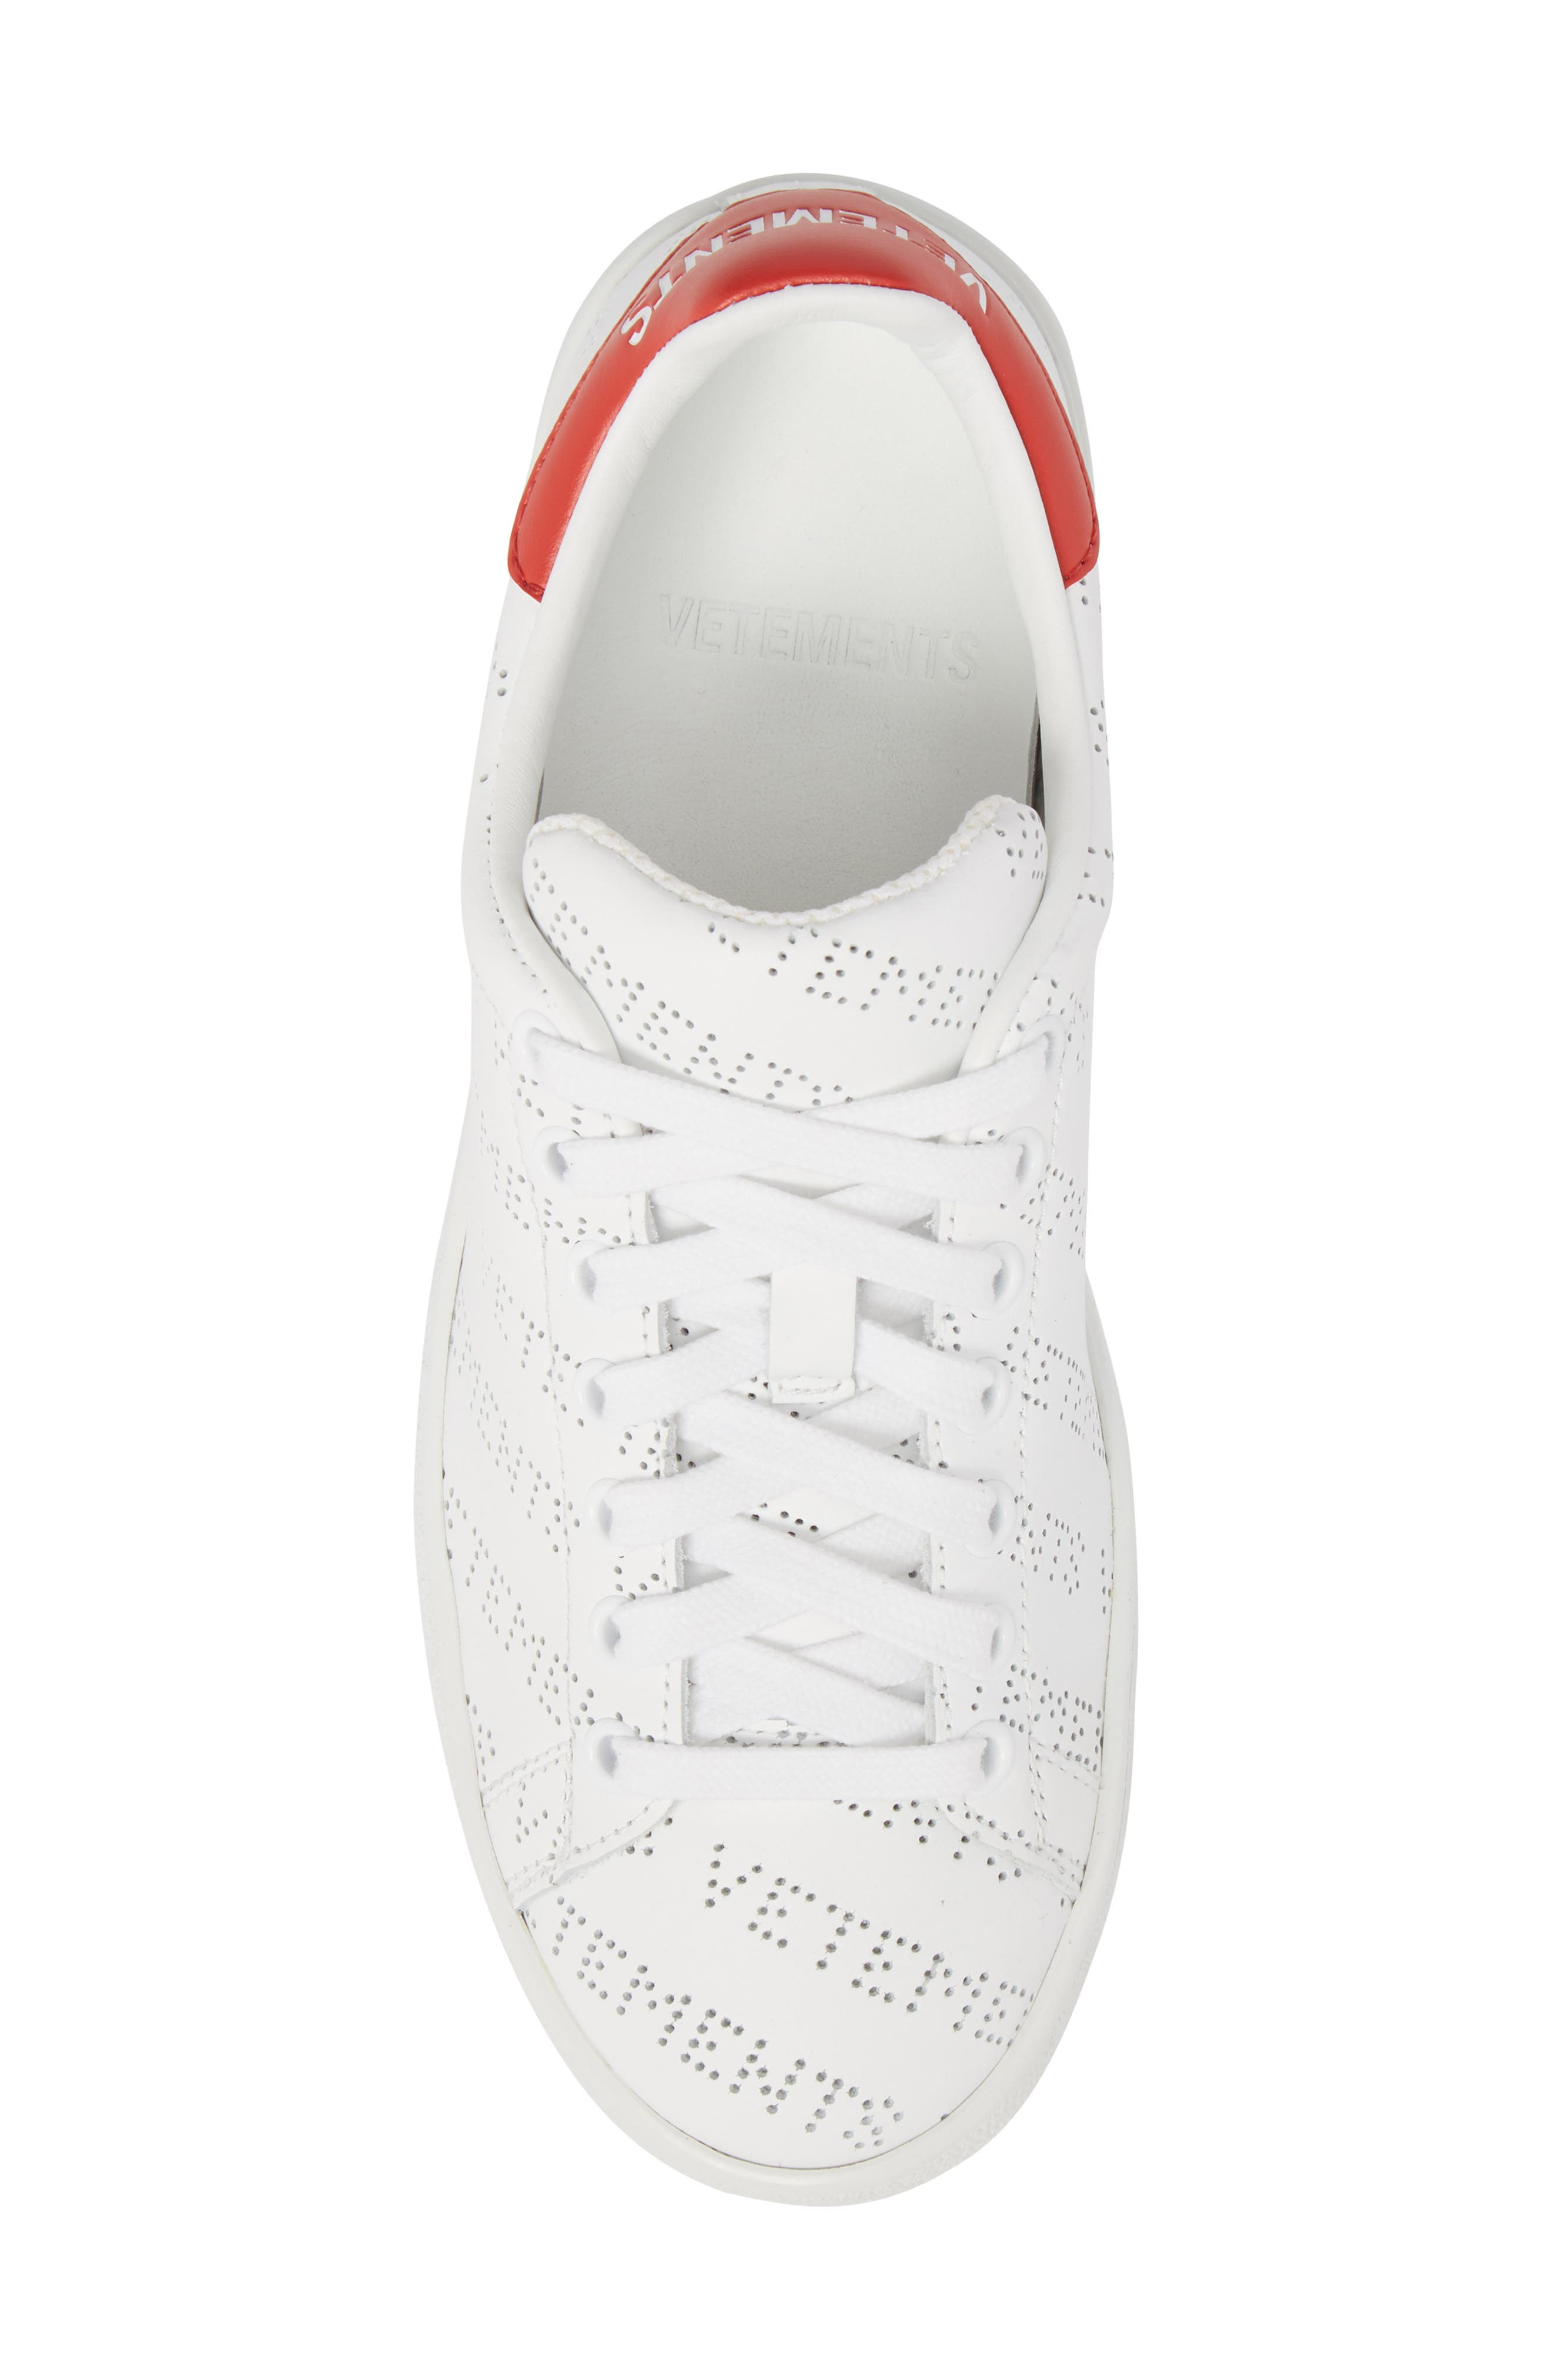 Perforated Sneaker,                             Alternate thumbnail 5, color,                             WHITE RED